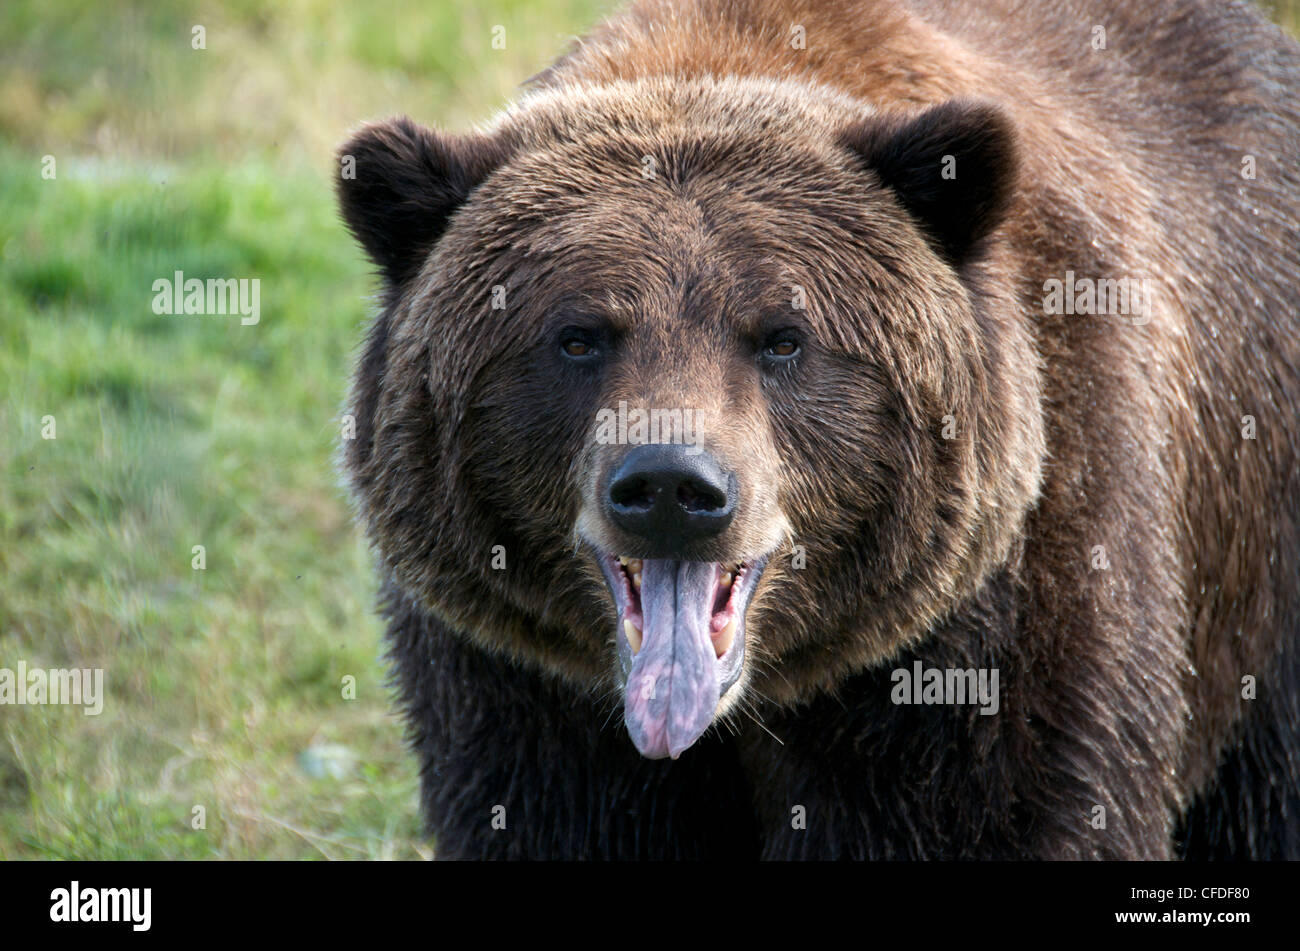 Close-up Grizzly Bear face looking viewer - Stock Image